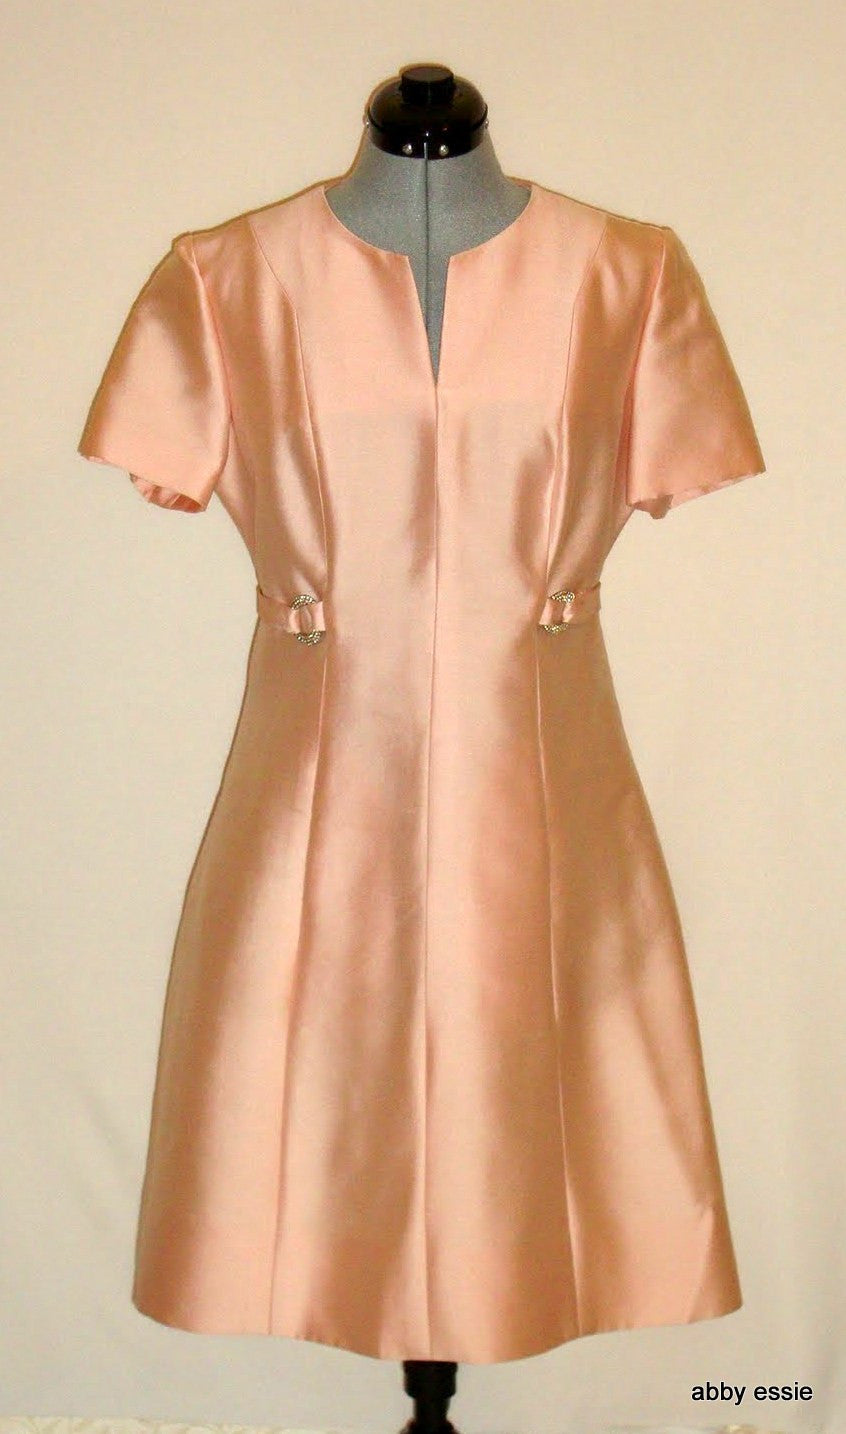 VINTAGE LISBETH WOLFFE PINK PEACH SATIN COCKTAIL SHEATH RHINESTONE DRESS MEDIUM